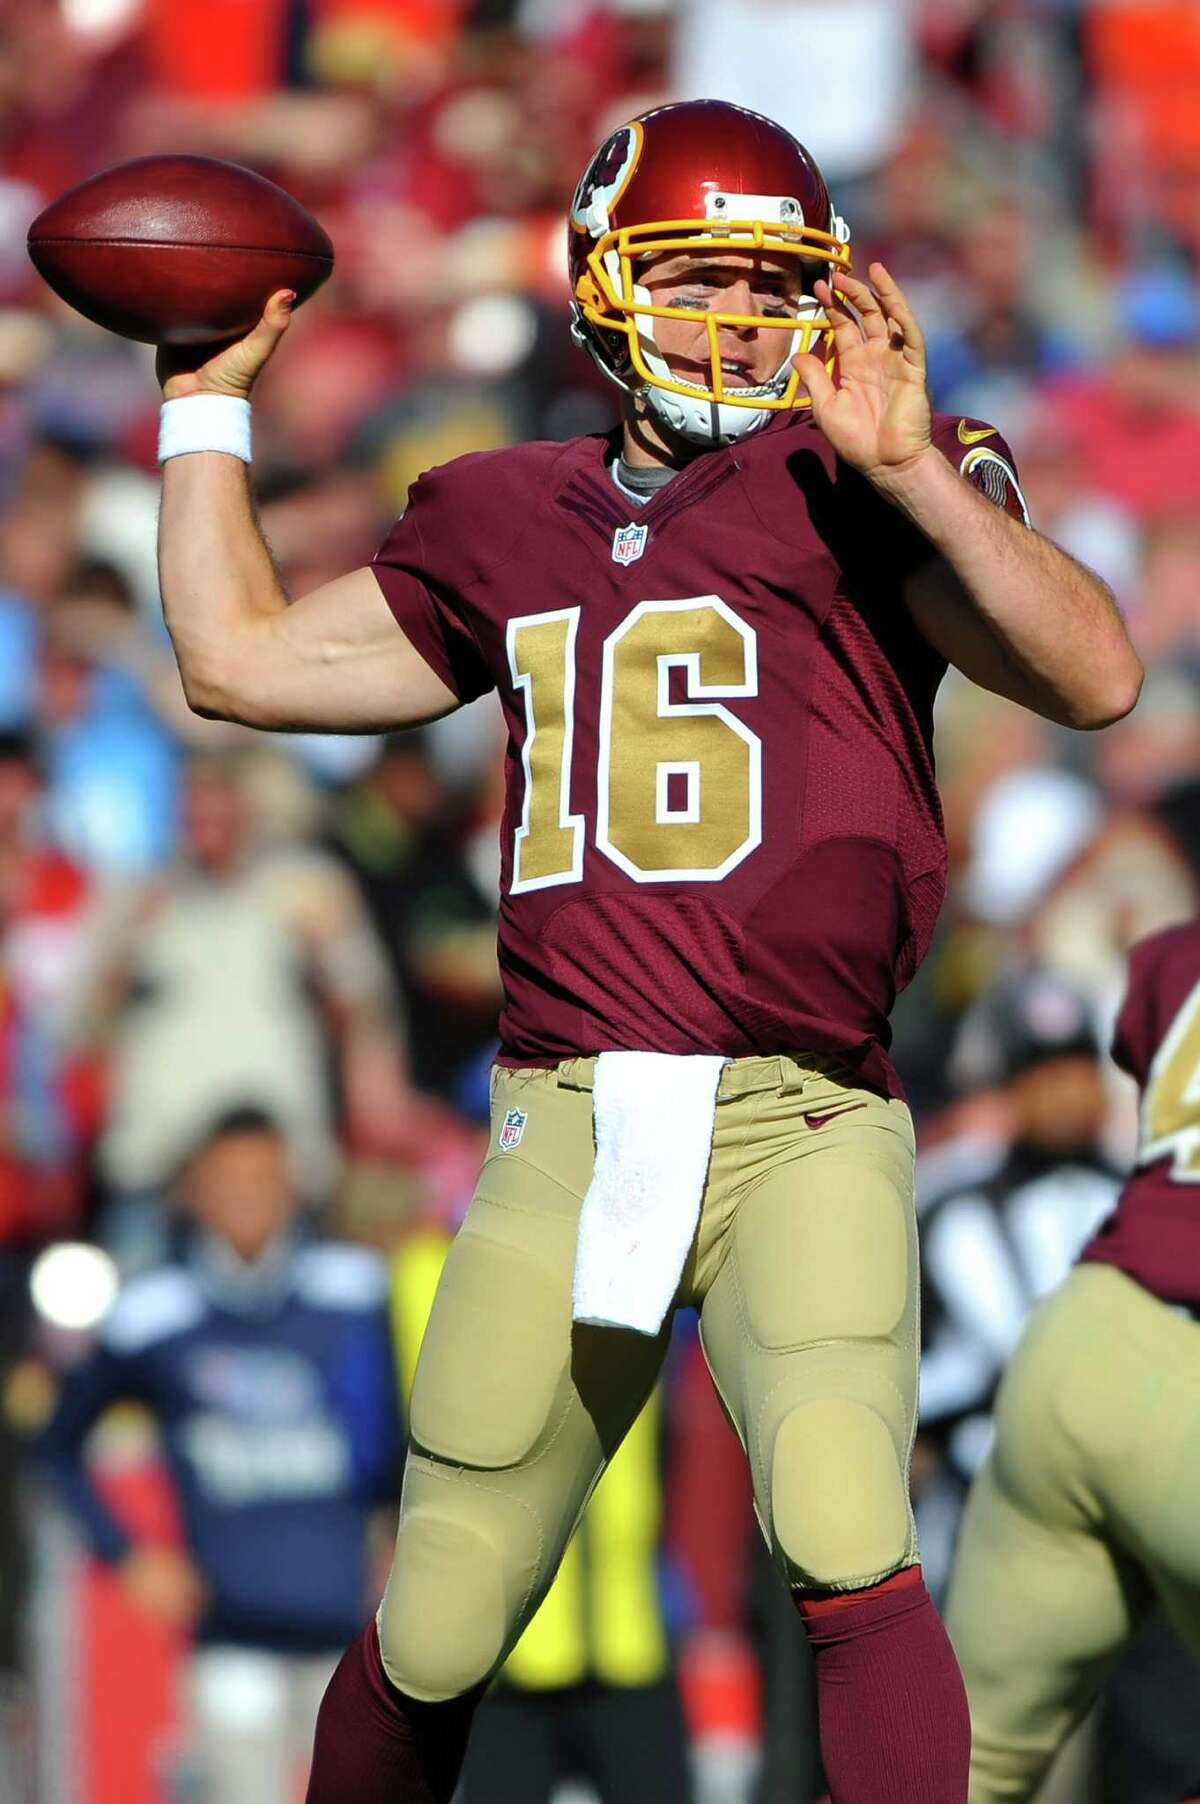 LANDOVER, MD - OCTOBER 19: Colt McCoy #16 of the Washington Redskins looks to pass against the Tennessee Titans during third quarter at FedEx Field on October 19, 2014 in Landover, Maryland.